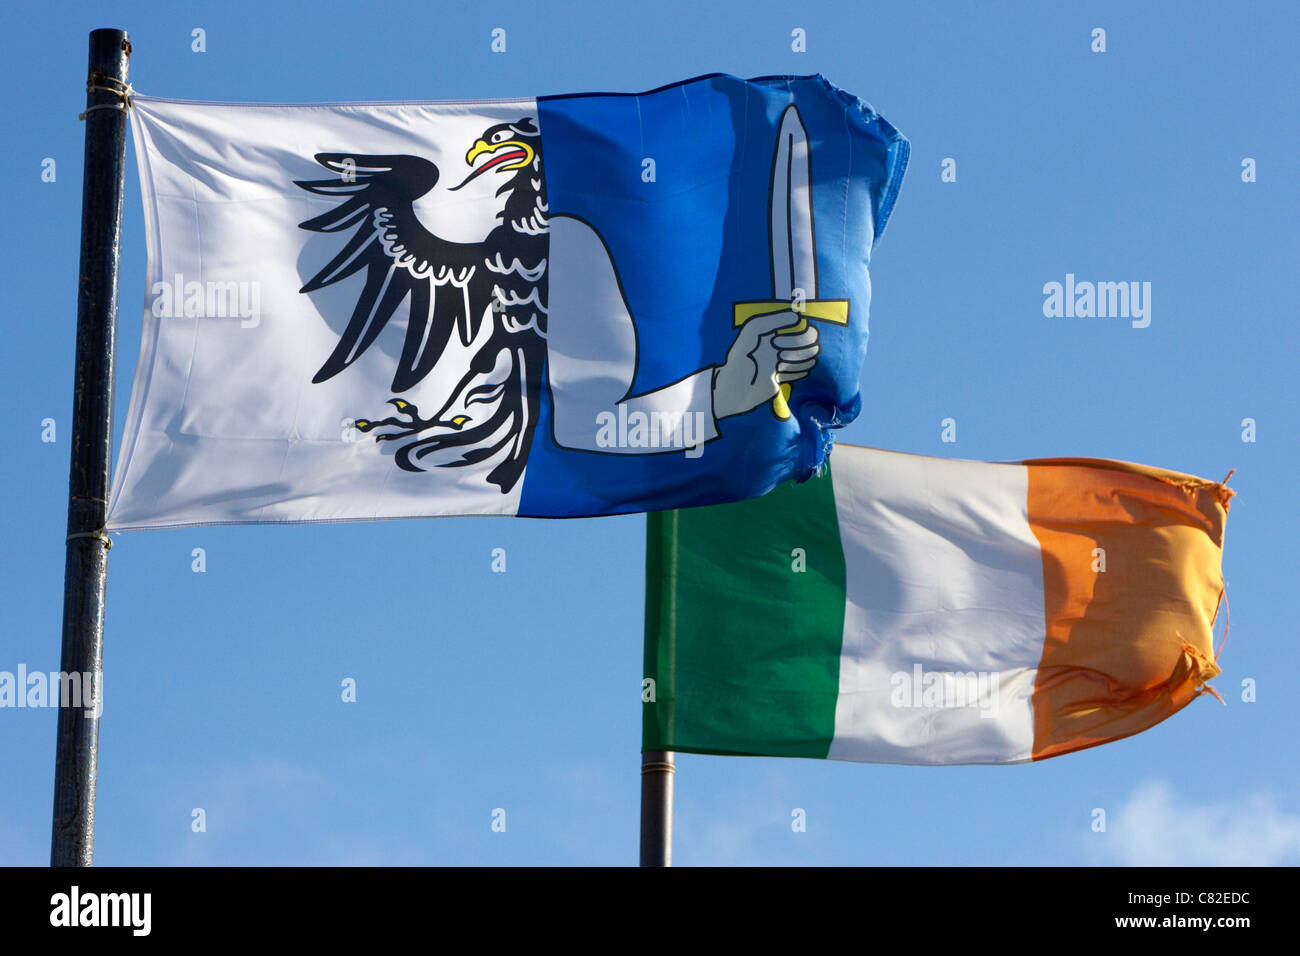 provincial connacht and irish tricolour flags flying in republic of ireland - Stock Image